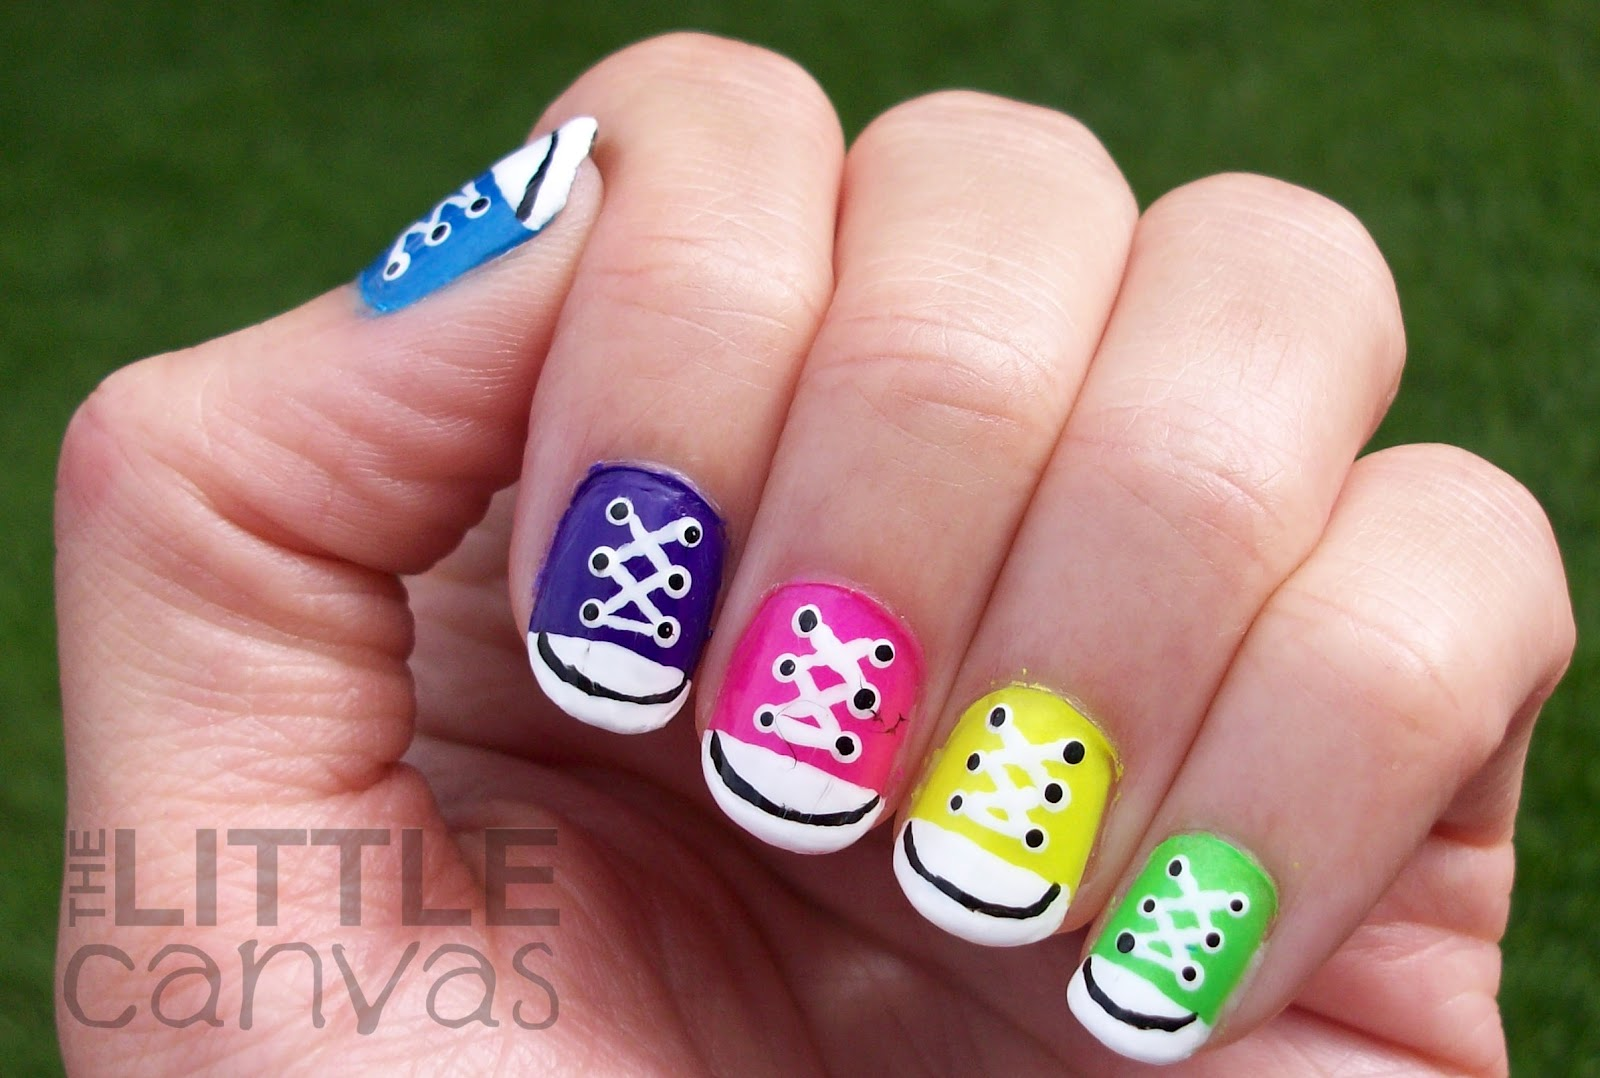 Converse Nails Very Cool Nails Pinterest Converse Nails